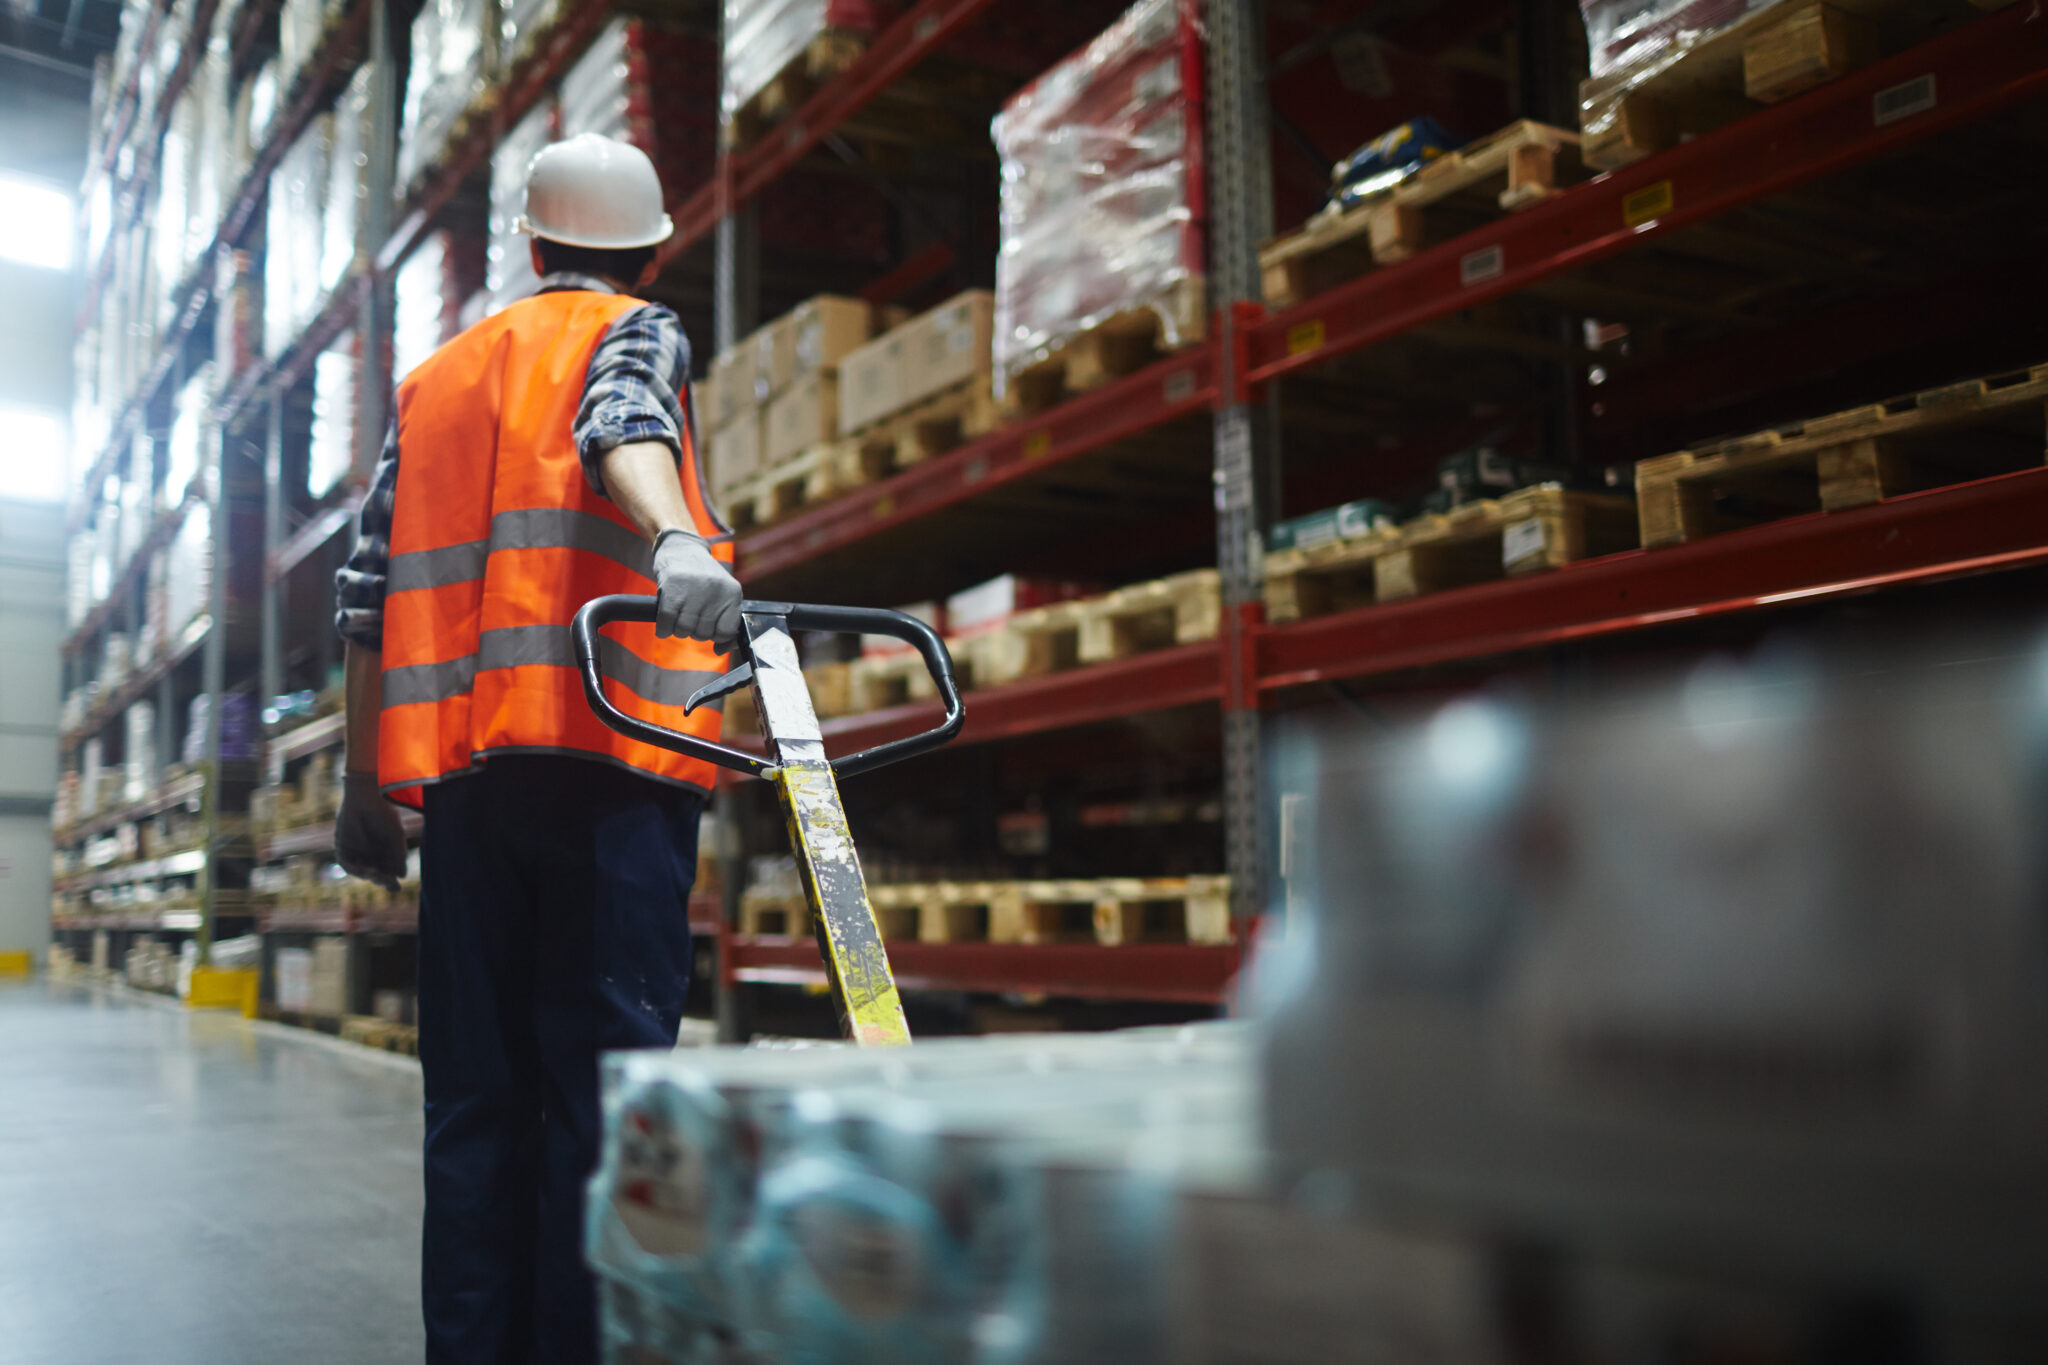 man pulling forklift in warehouse